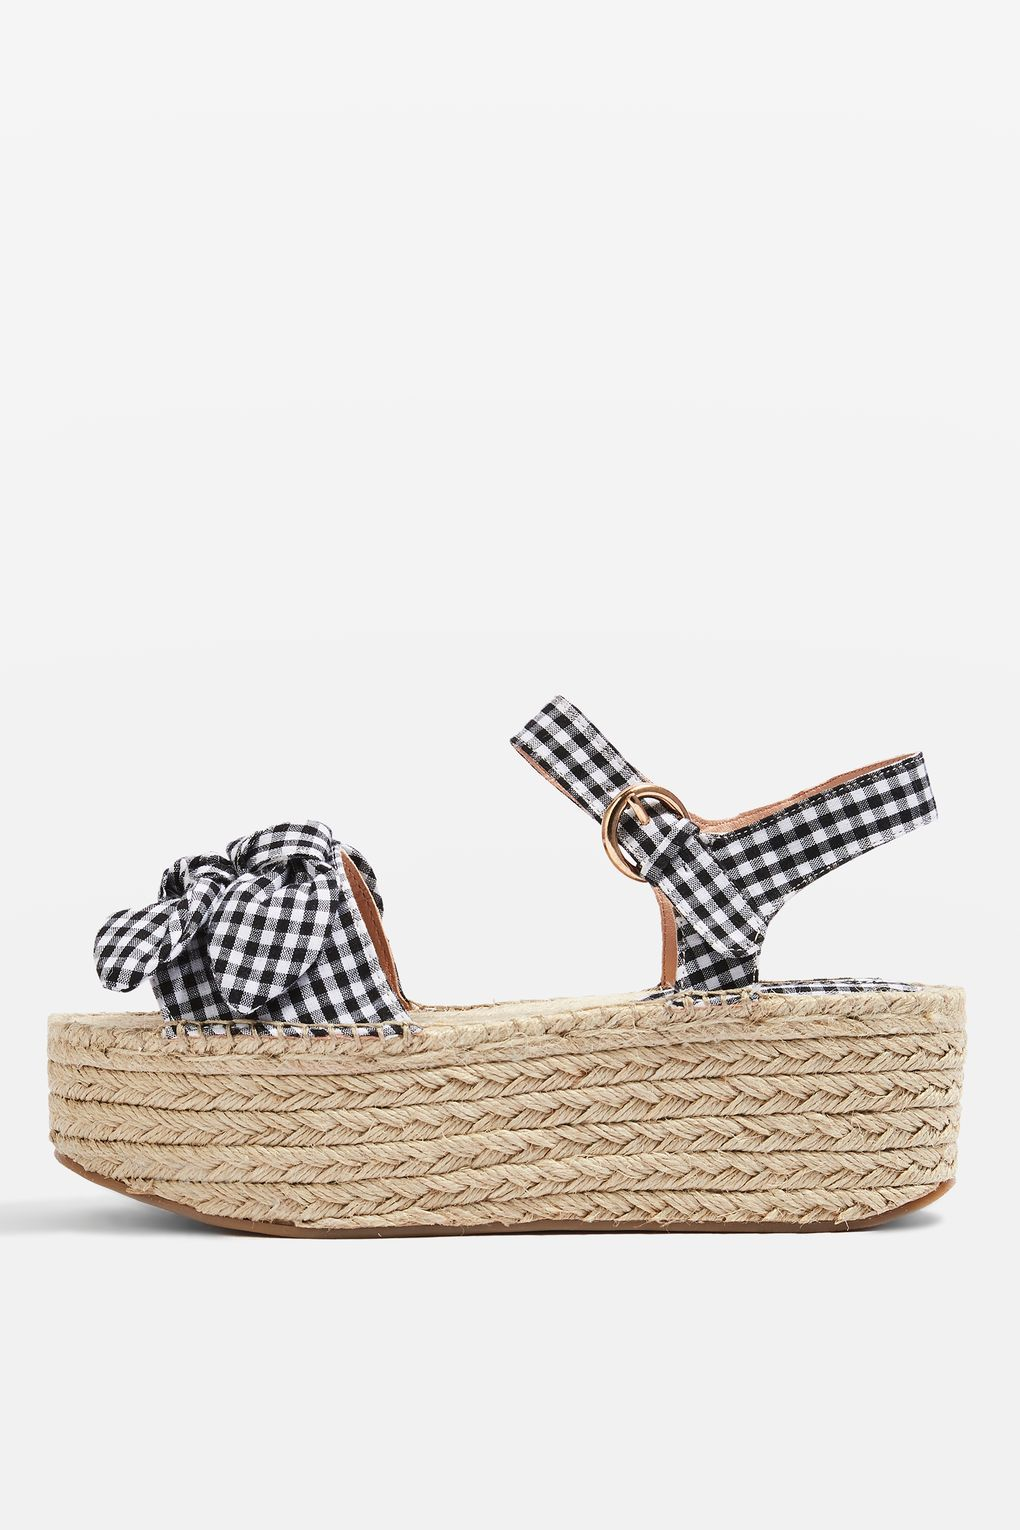 f8346cd88a2 These gingham platform sandals need to make their way into your closet!